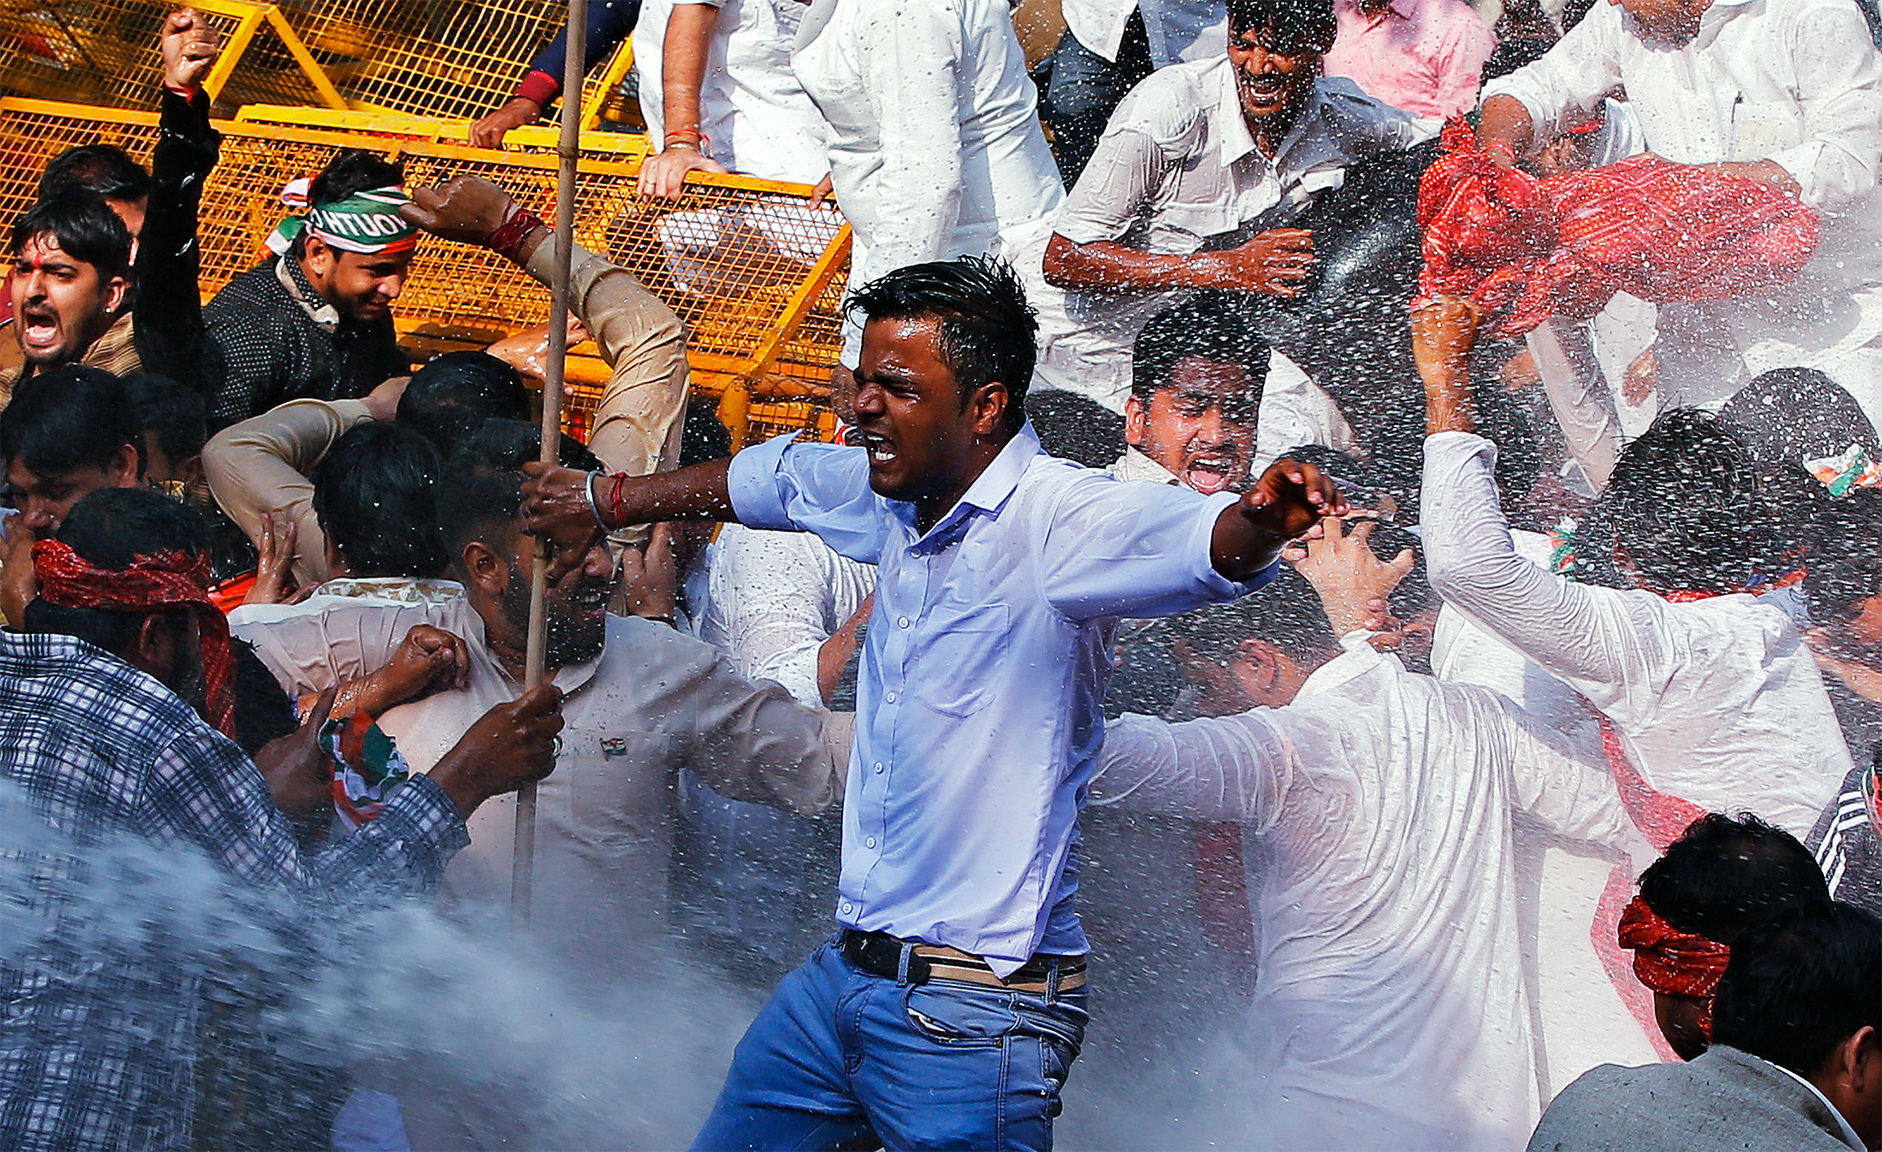 Police use water cannon to disperse activists of the youth wing of India's main opposition Congress party during a protest in New Delhi